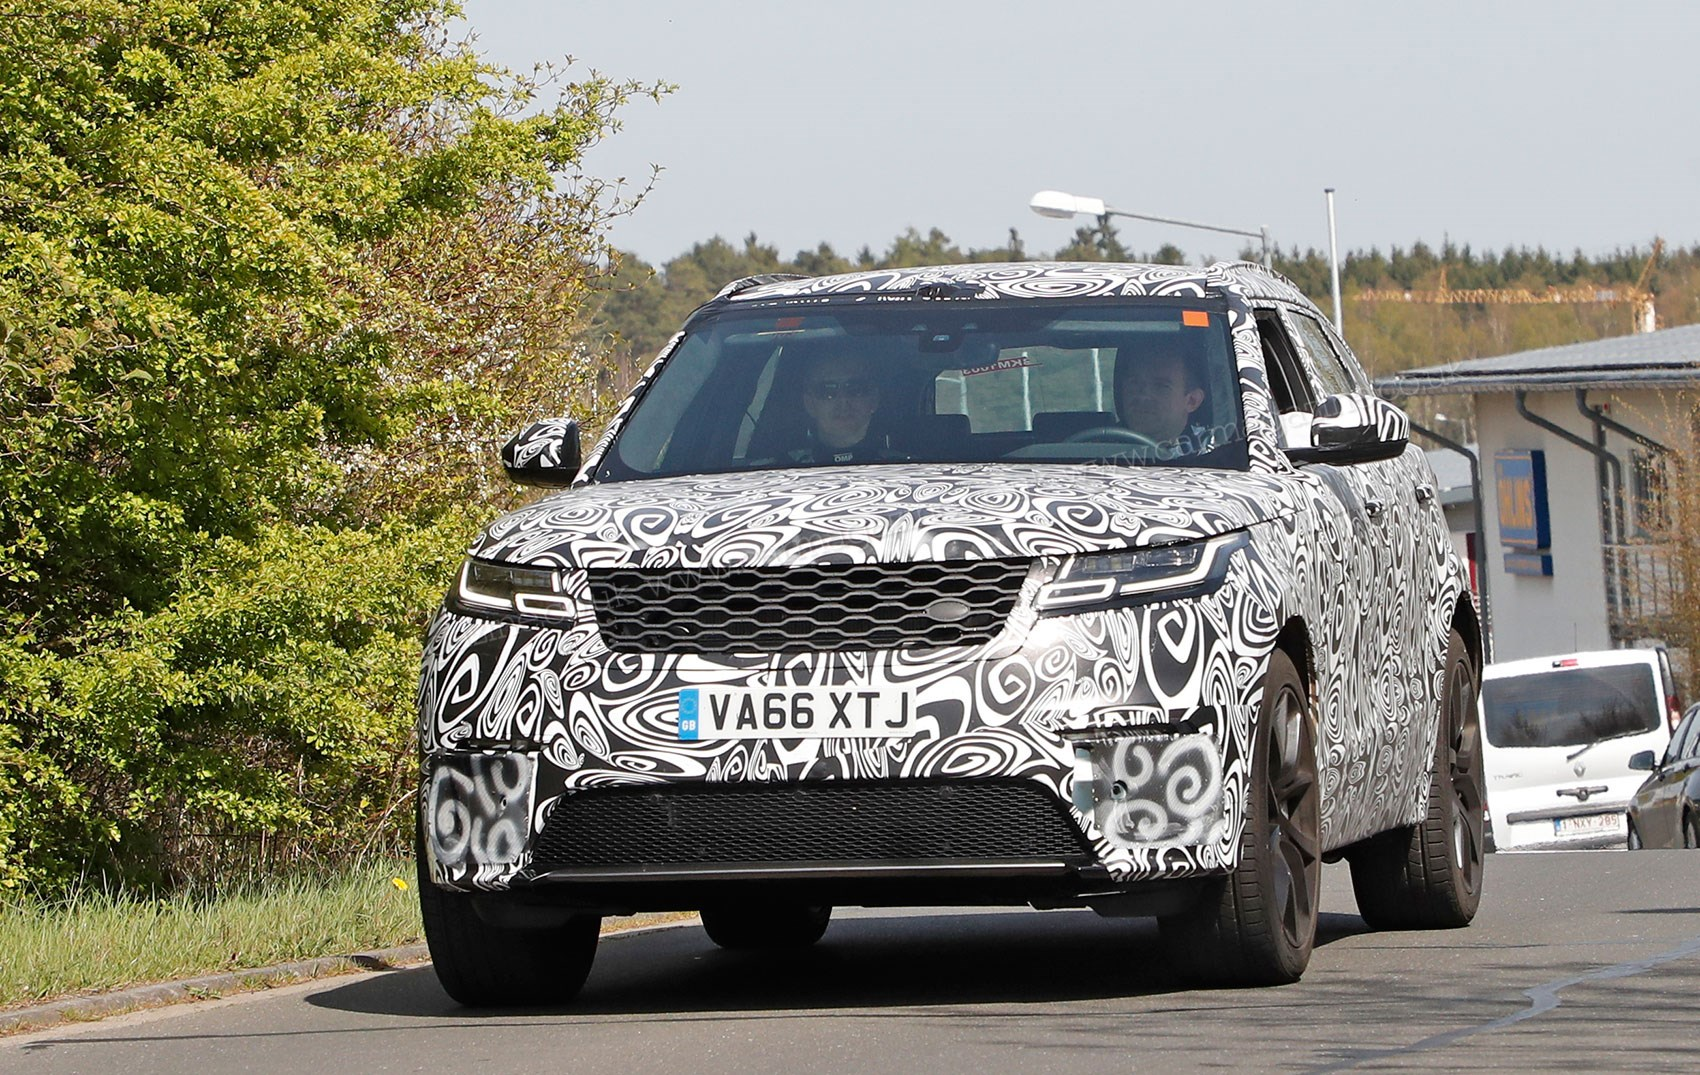 New 2019 Range Rover Velar Svr Spied By Car Magazine